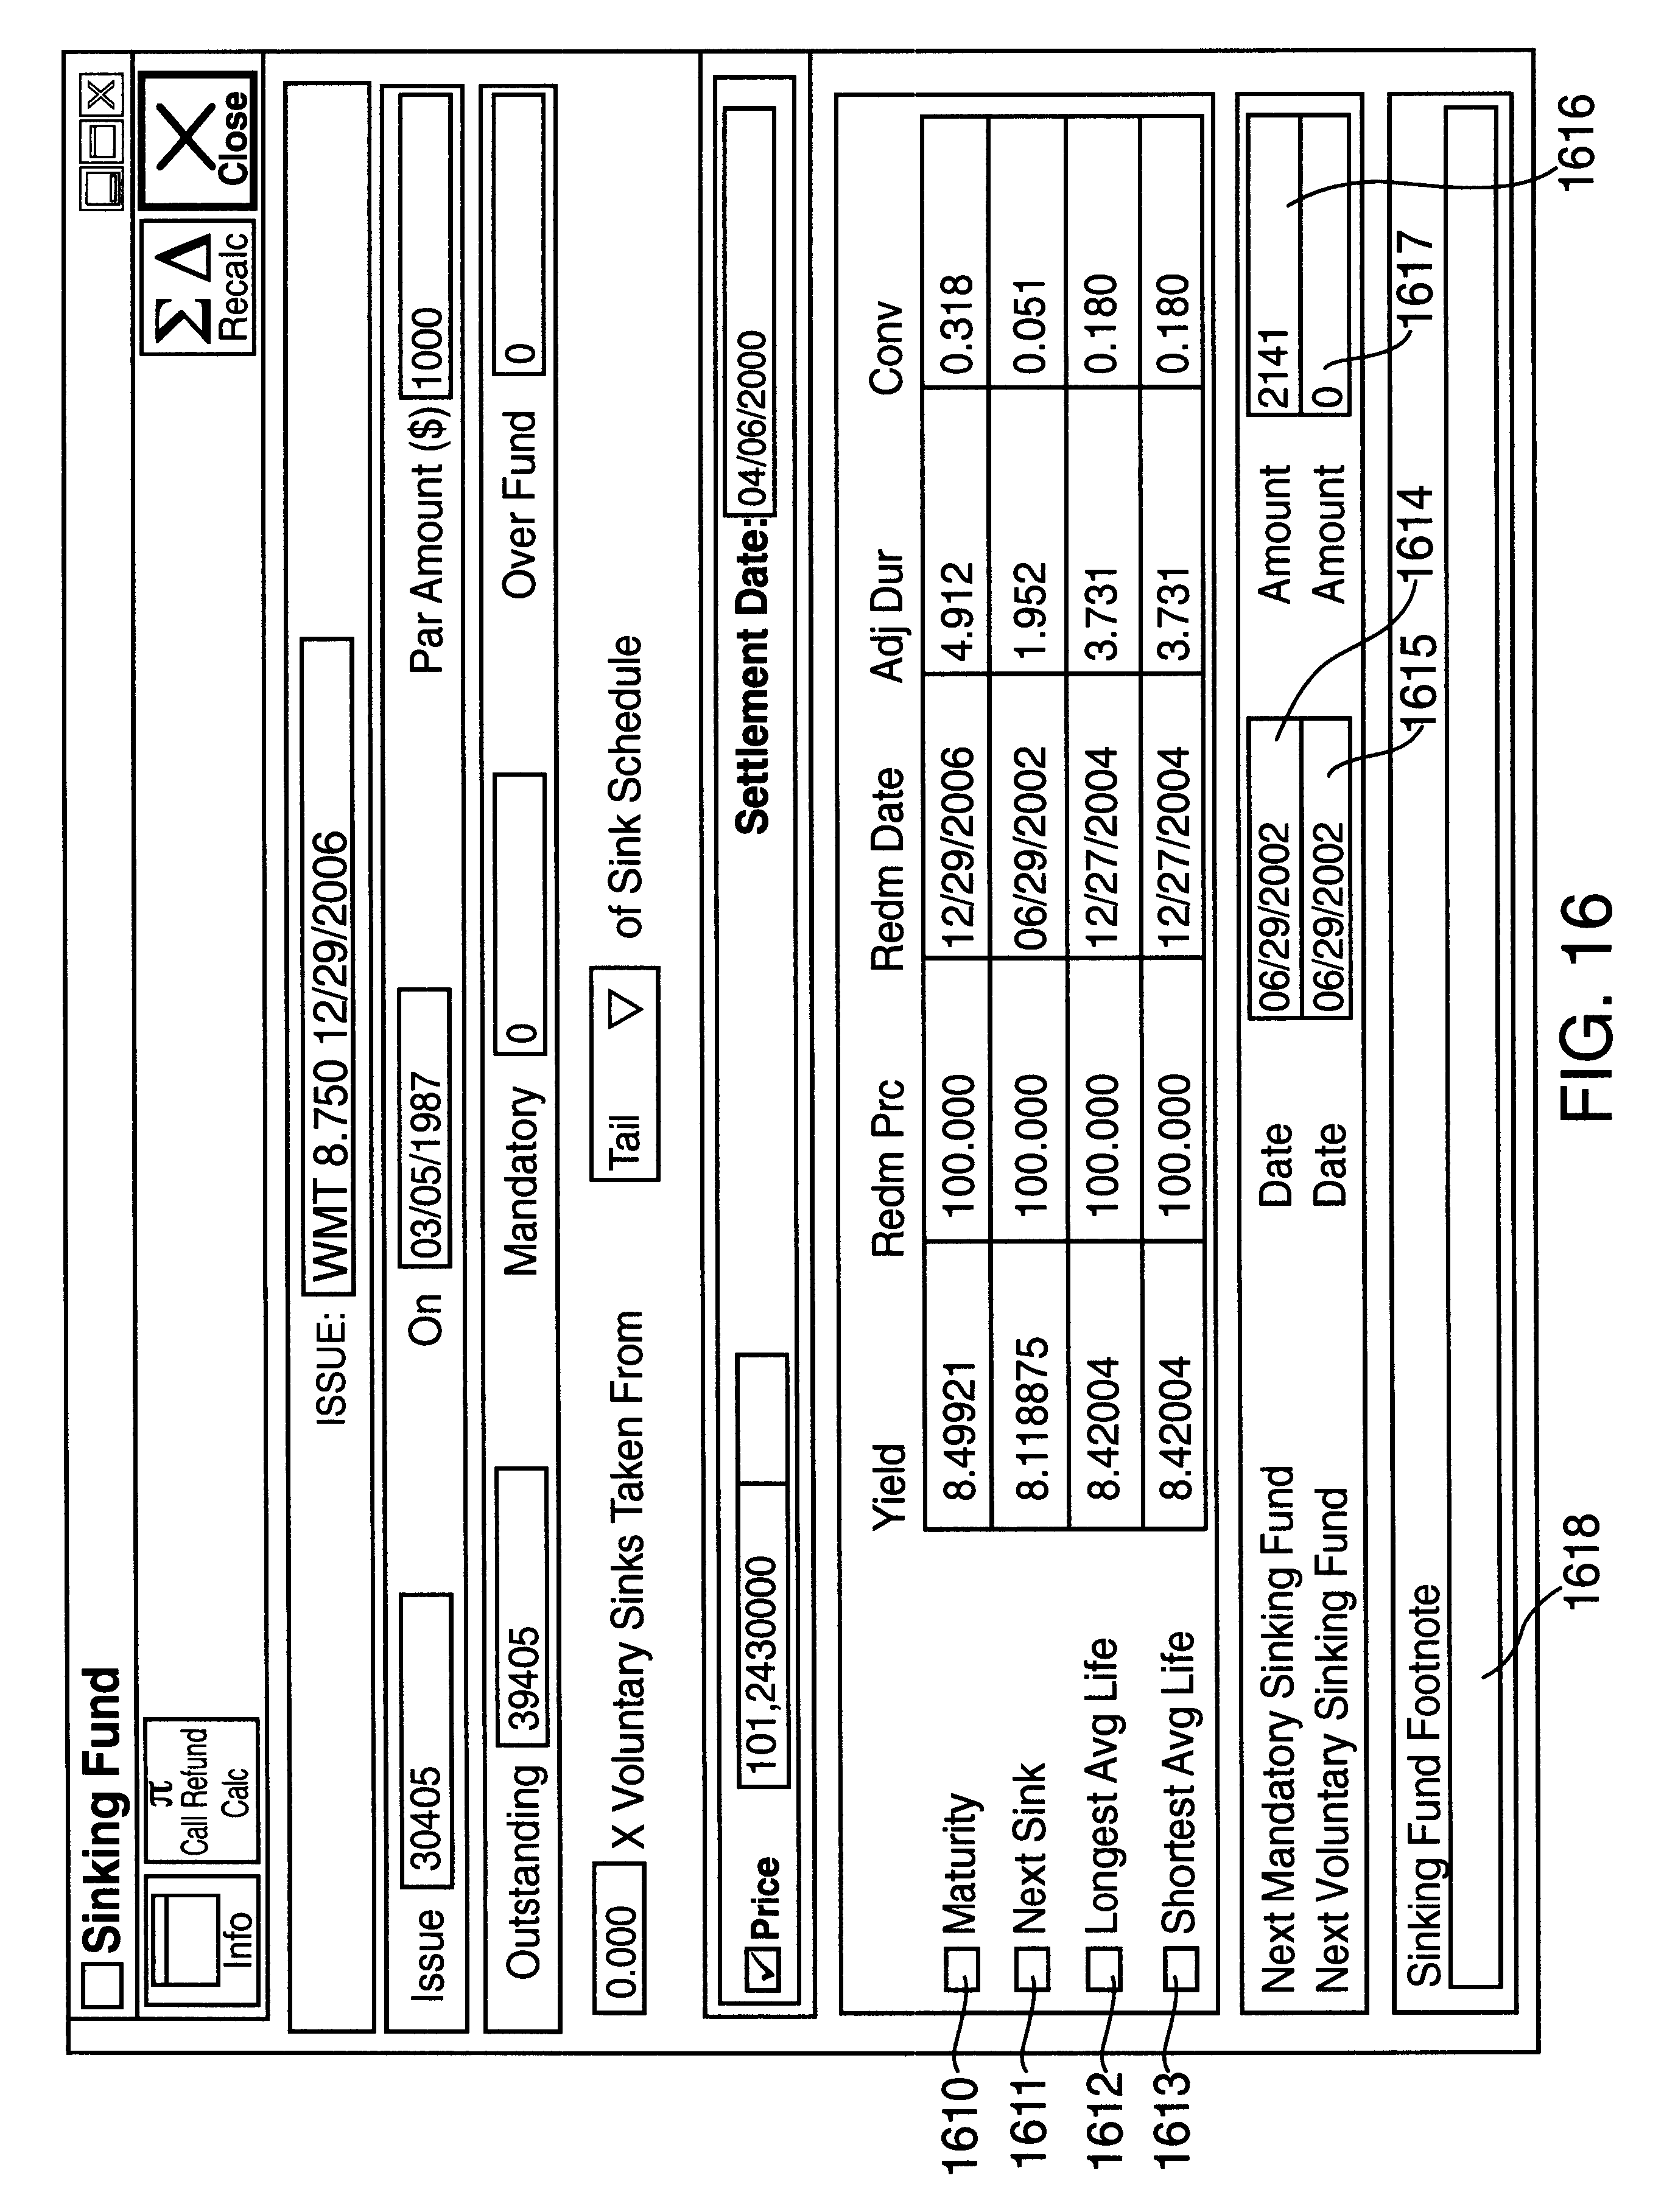 Fixed income and related securities trading system